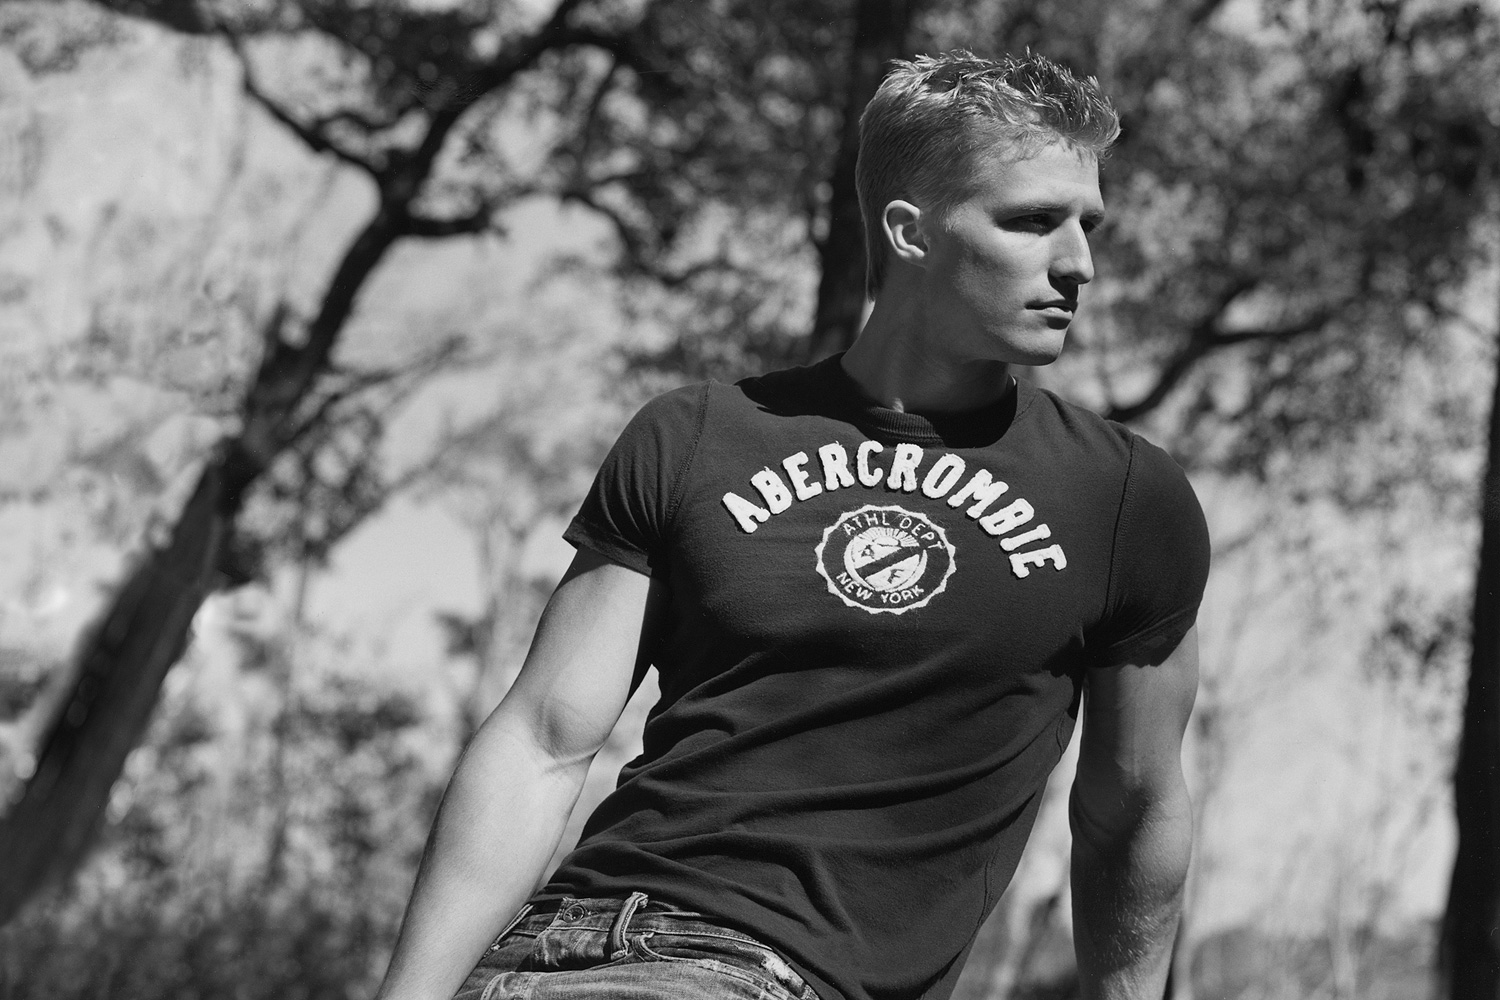 ABERCROMBIE_and_FITCH_MENS_graphic_tee_crests.jpg